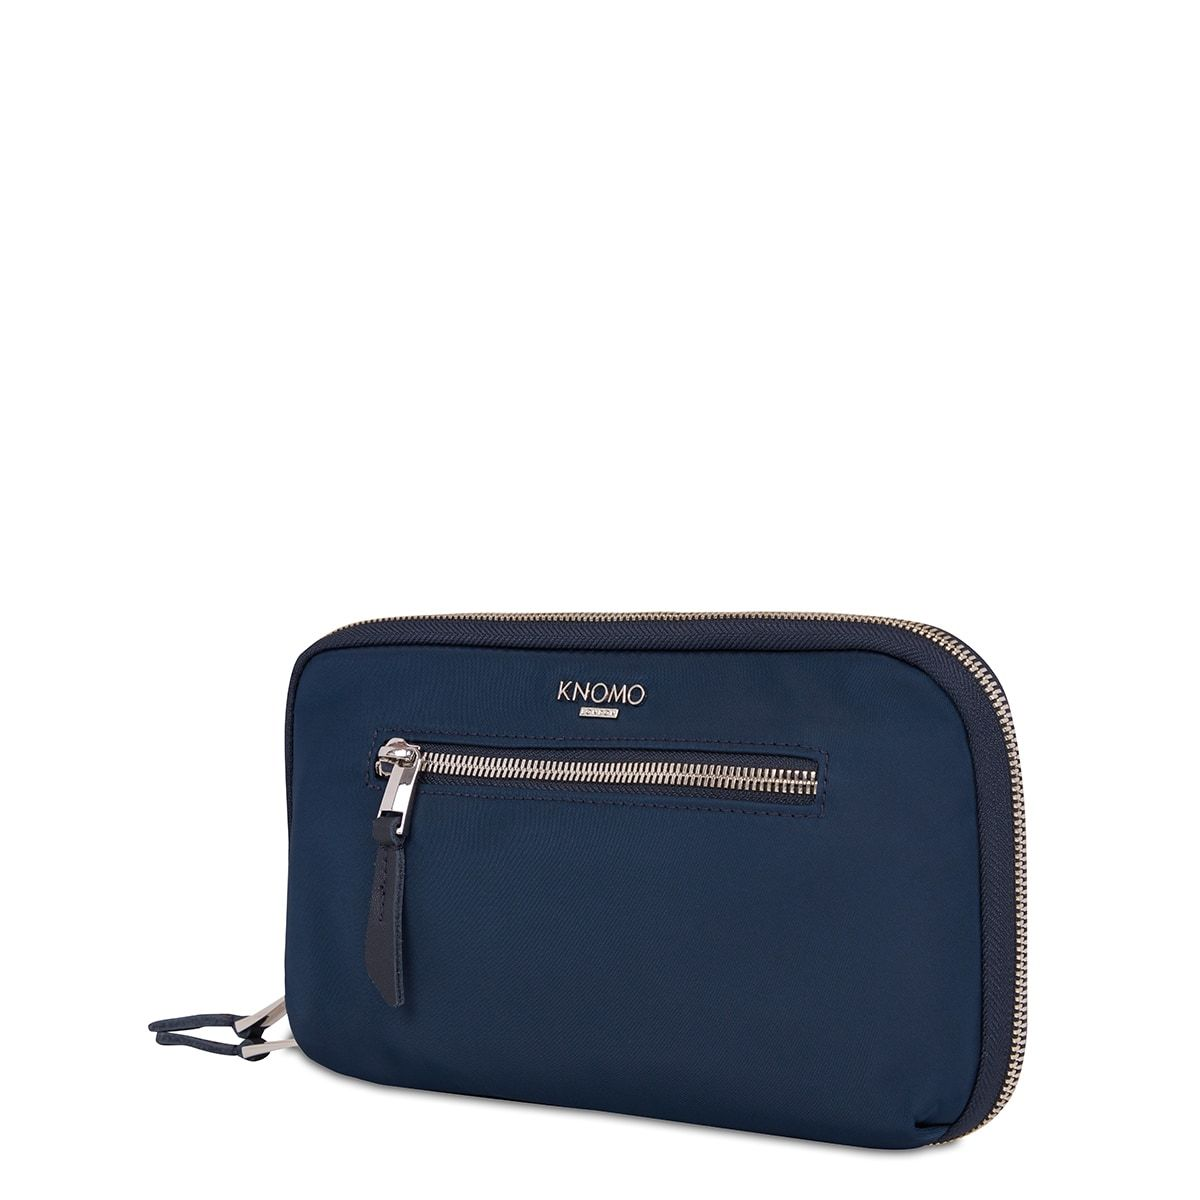 "KNOMO Knomad Travel Wallet Travel Organiser Three Quarter View 8"" -  Dark Navy Blazer 